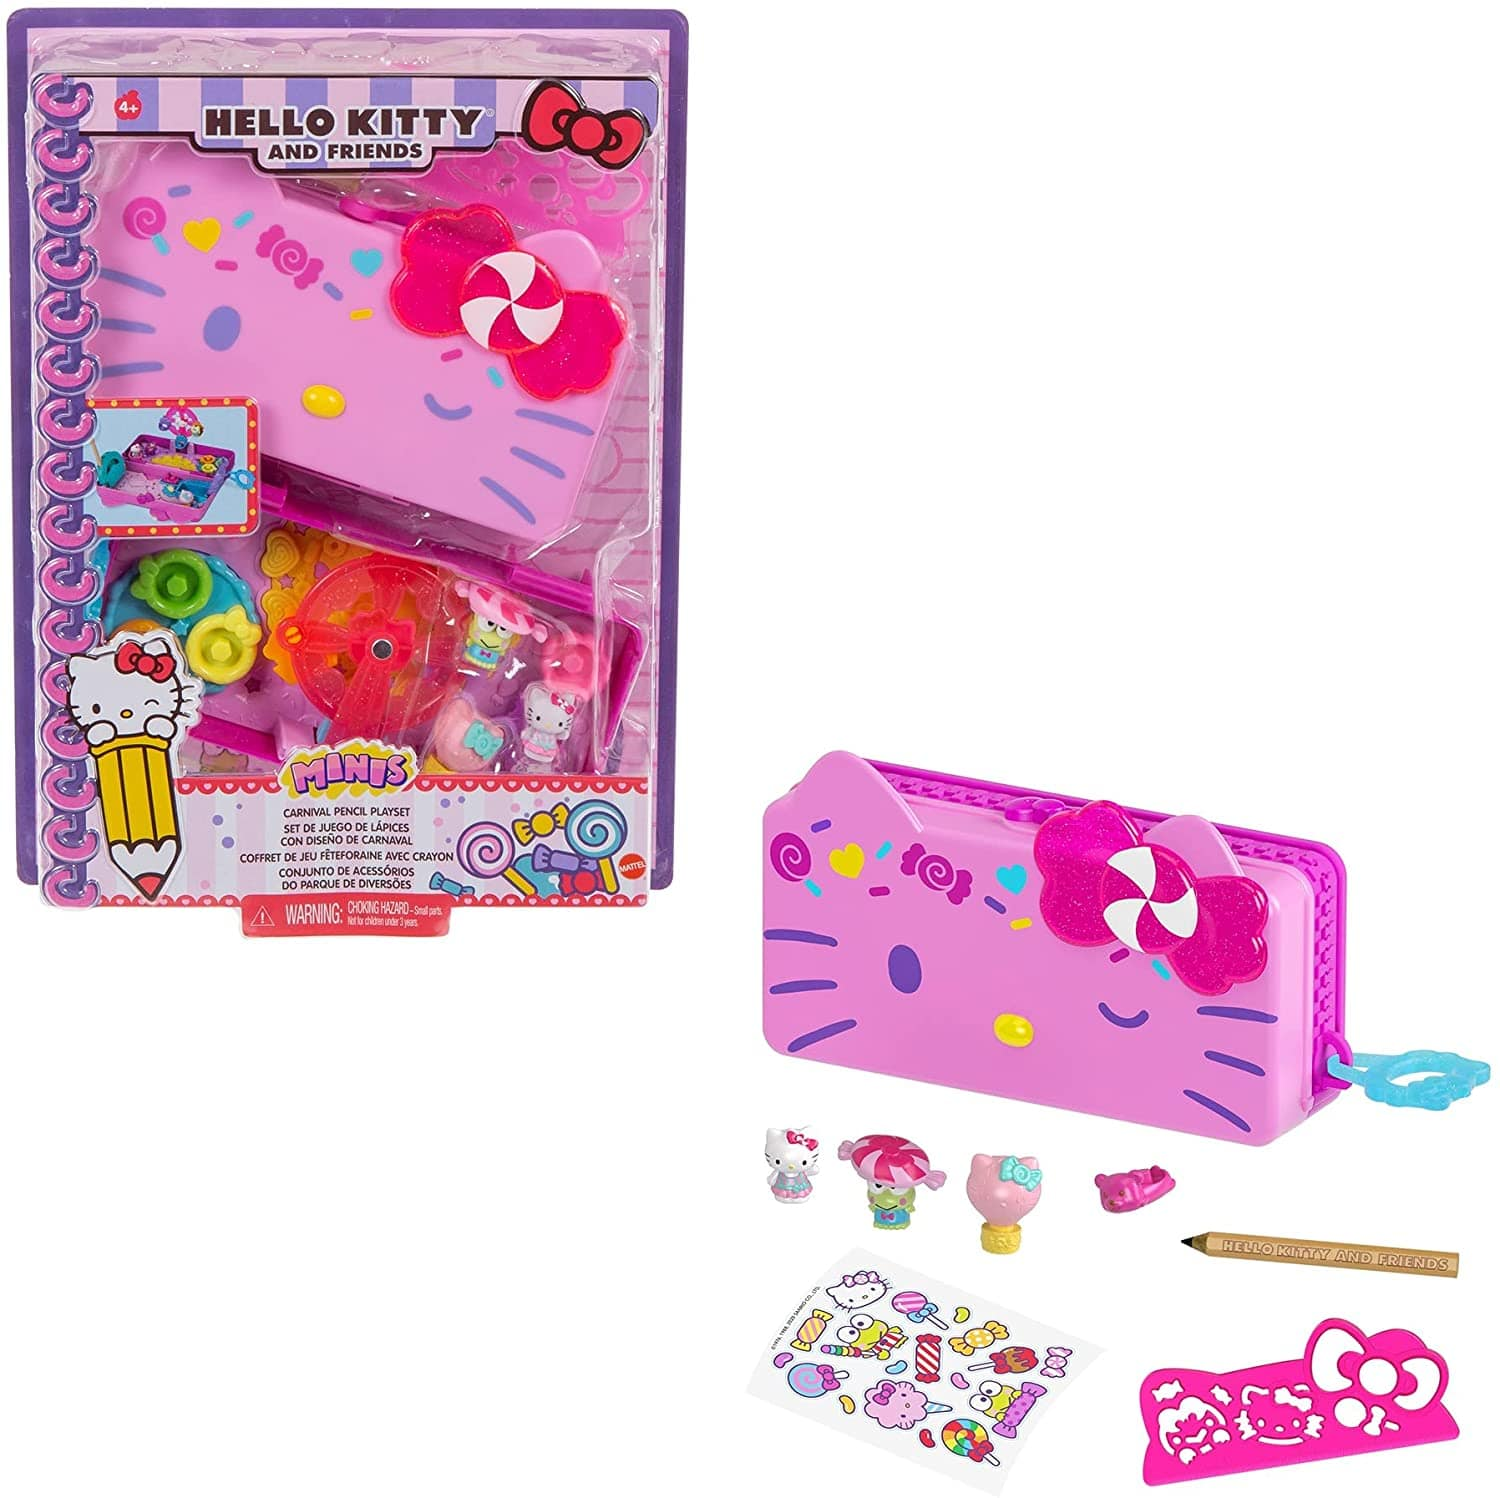 Hello Kitty and Friends Minis Candy Carnival Pencil Case Playset, 2 Sanrio Figures, Stationery $9.93 at Amazon